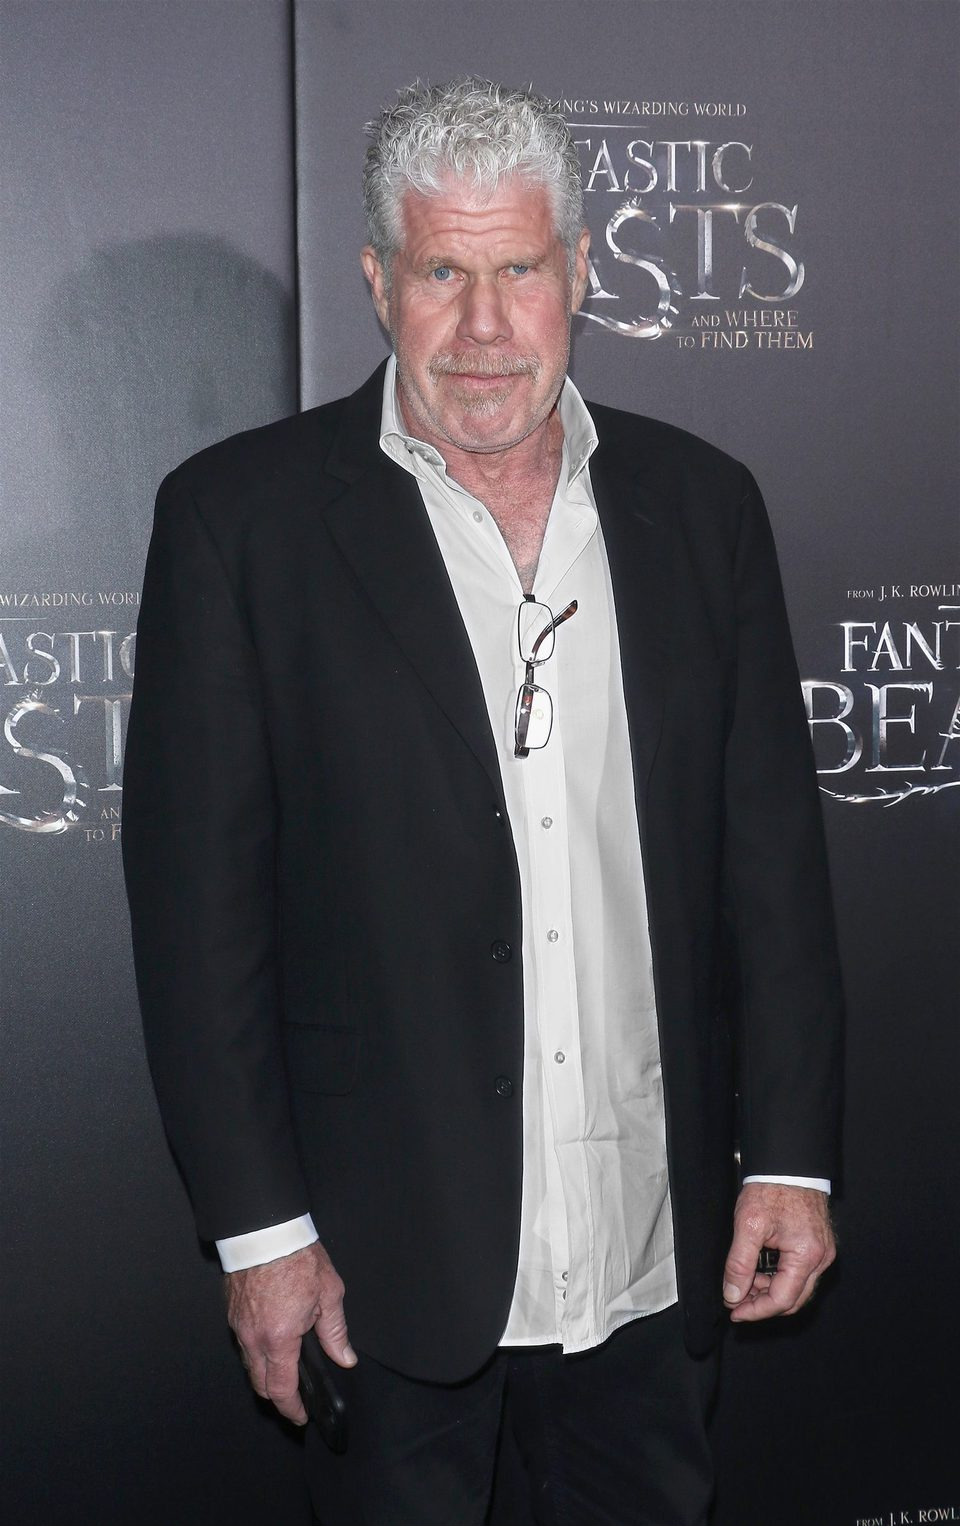 Ron Perlman at the world premiere of 'Fantastic Beasts and Where to Find Them'.